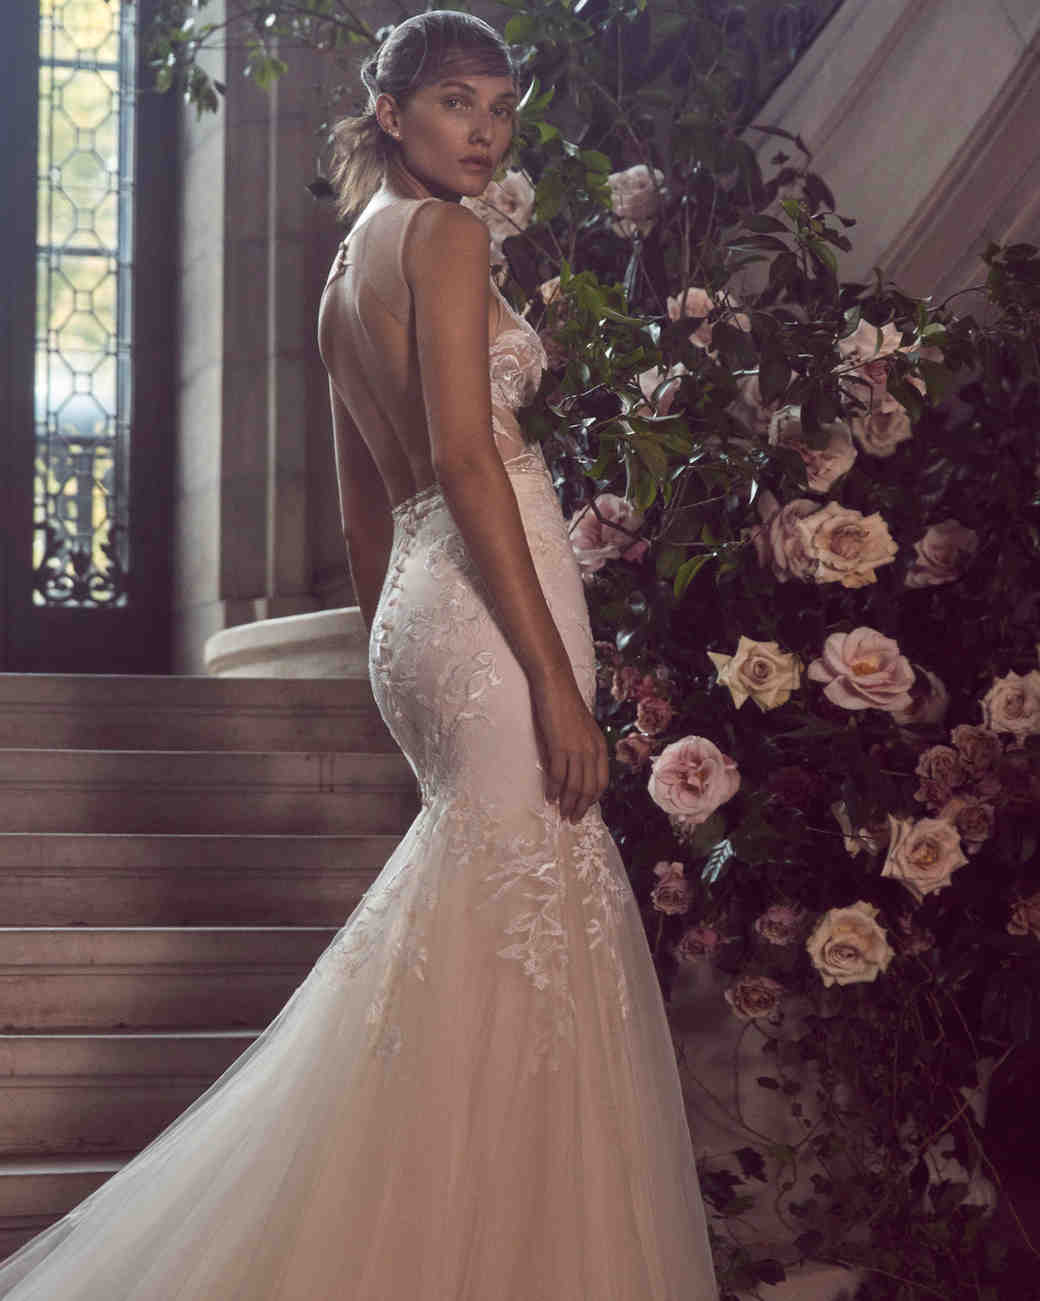 ba8238cb251b Bliss by Monique Lhuillier Fall 2019 Wedding Dress Collection | Martha  Stewart Weddings